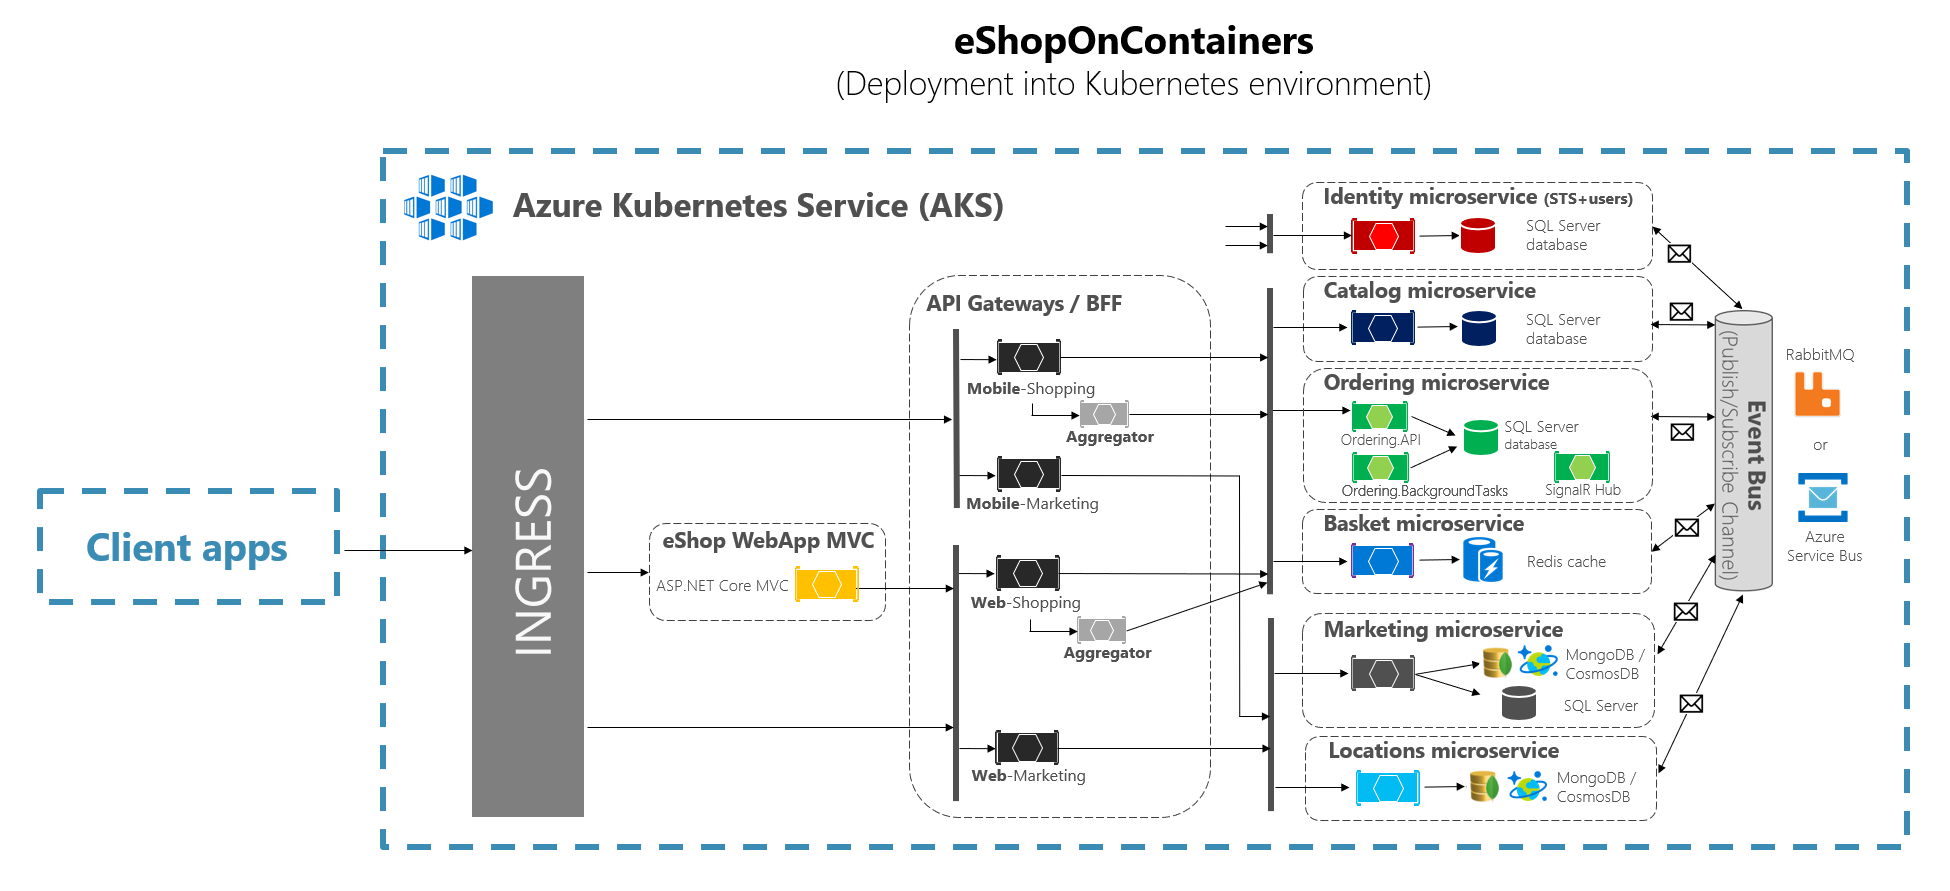 Implementao de gateways de api com o ocelot microsoft docs having an ingress nginx tier in kuberentes in front of the web applications plus the several ocelot api gateways bff is the ideal architecture ccuart Gallery